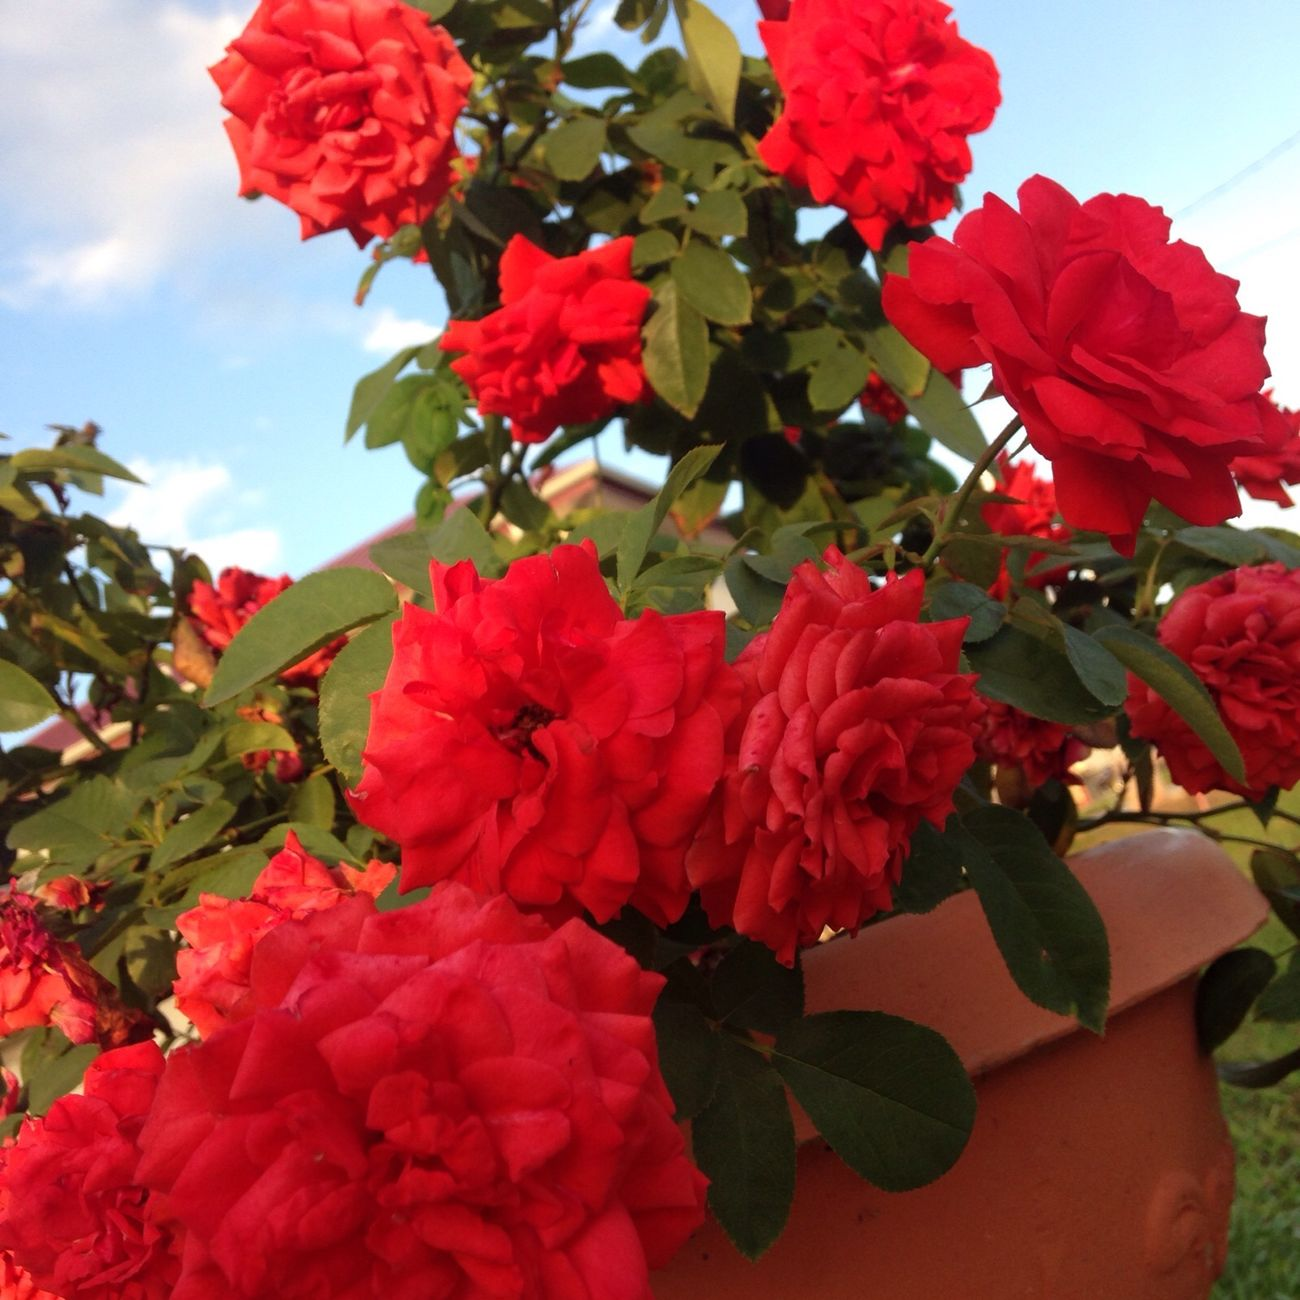 Red Roses Pretty Flowers My Roses In My Garden In My Yard Pretty Rose